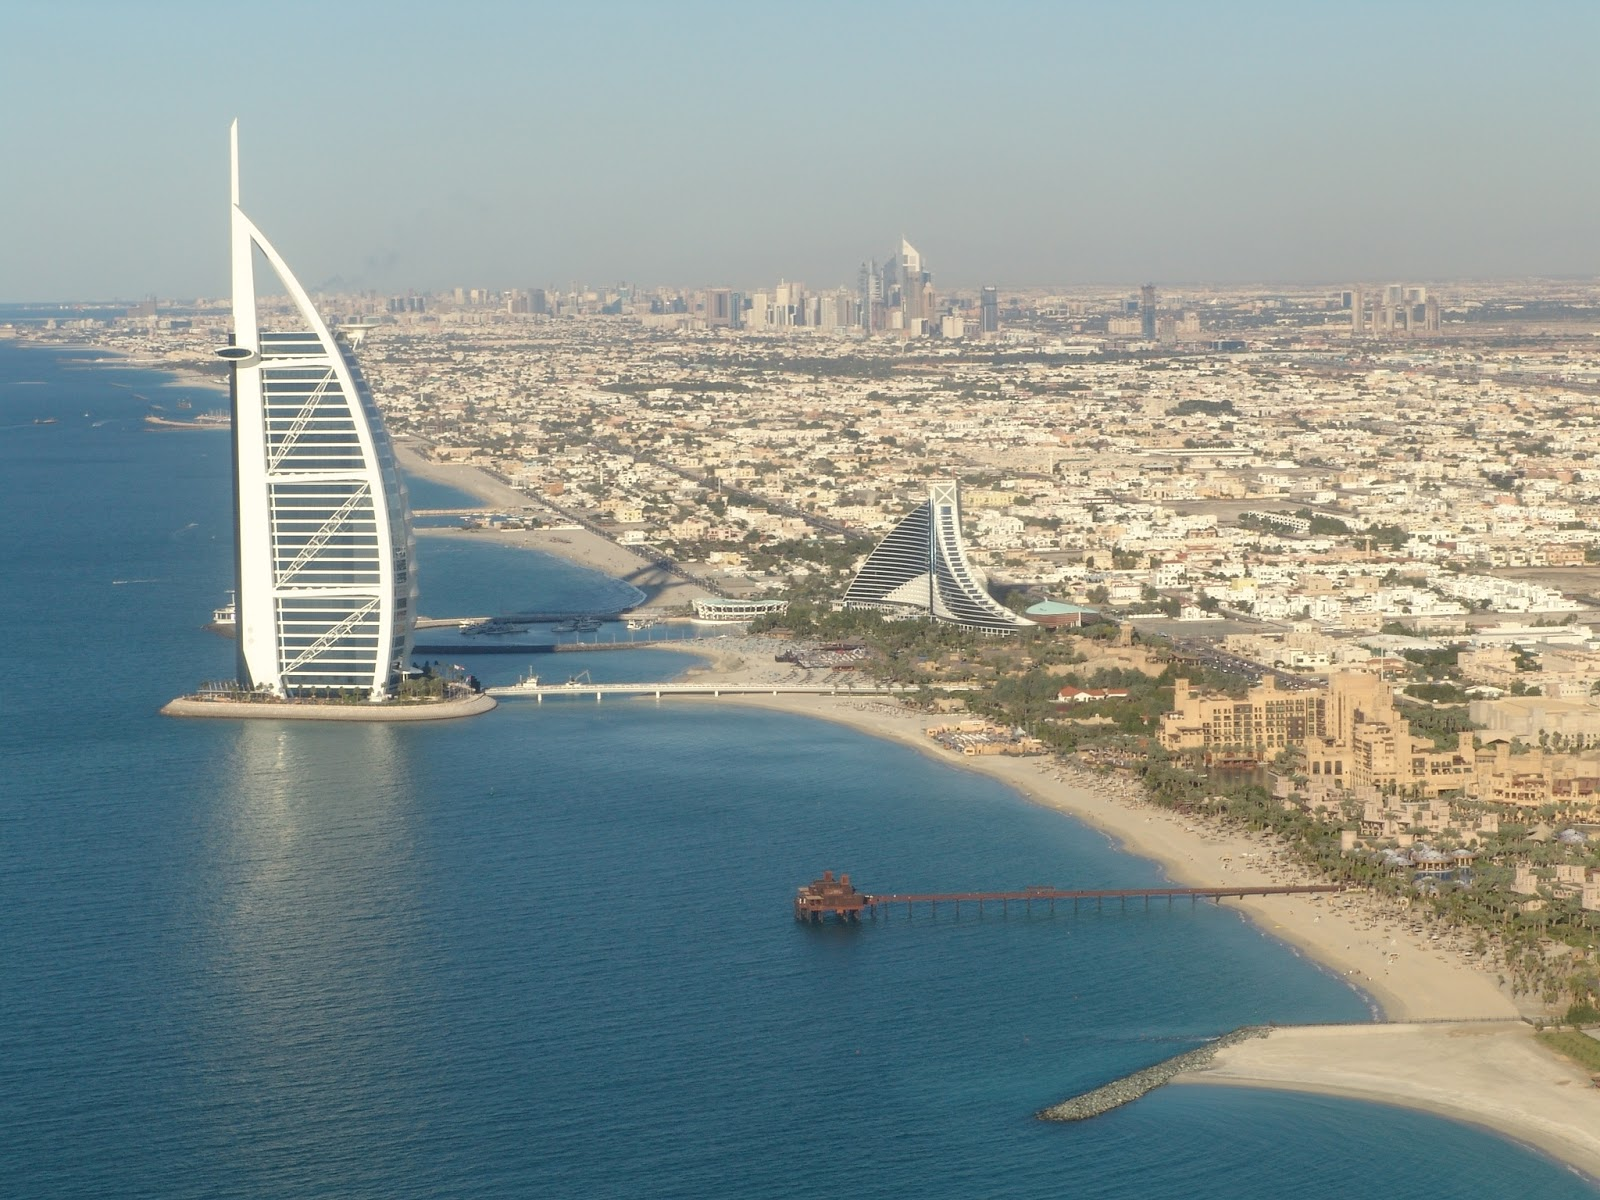 Burj al arab dubai travel info and travel guide for Burj arab dubai